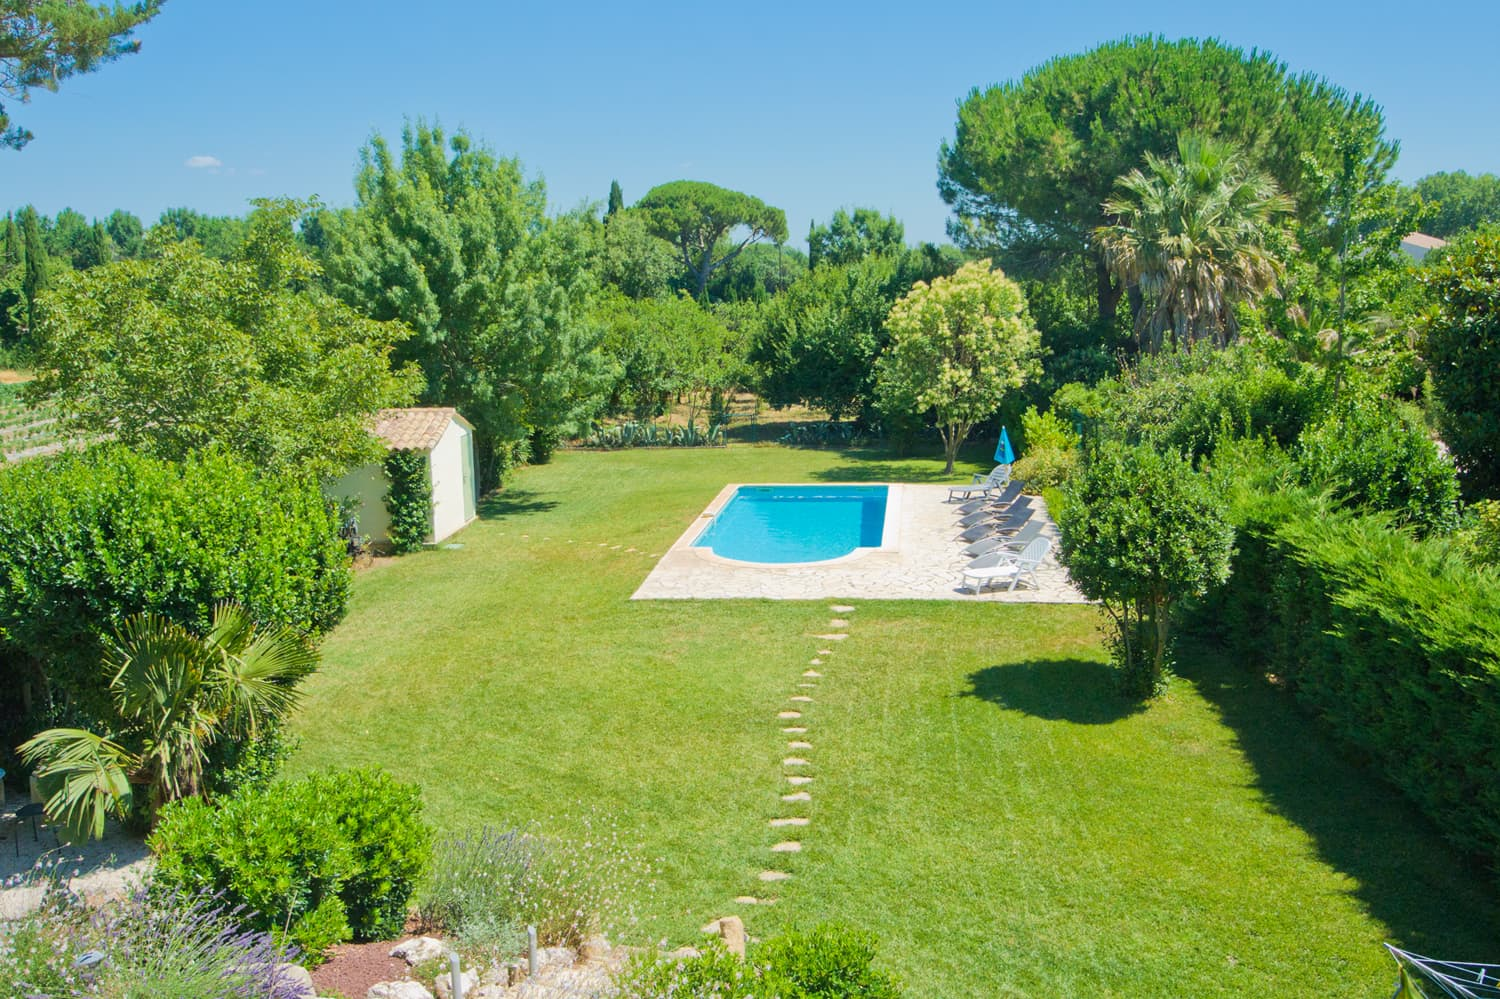 Lawned garden with private pool